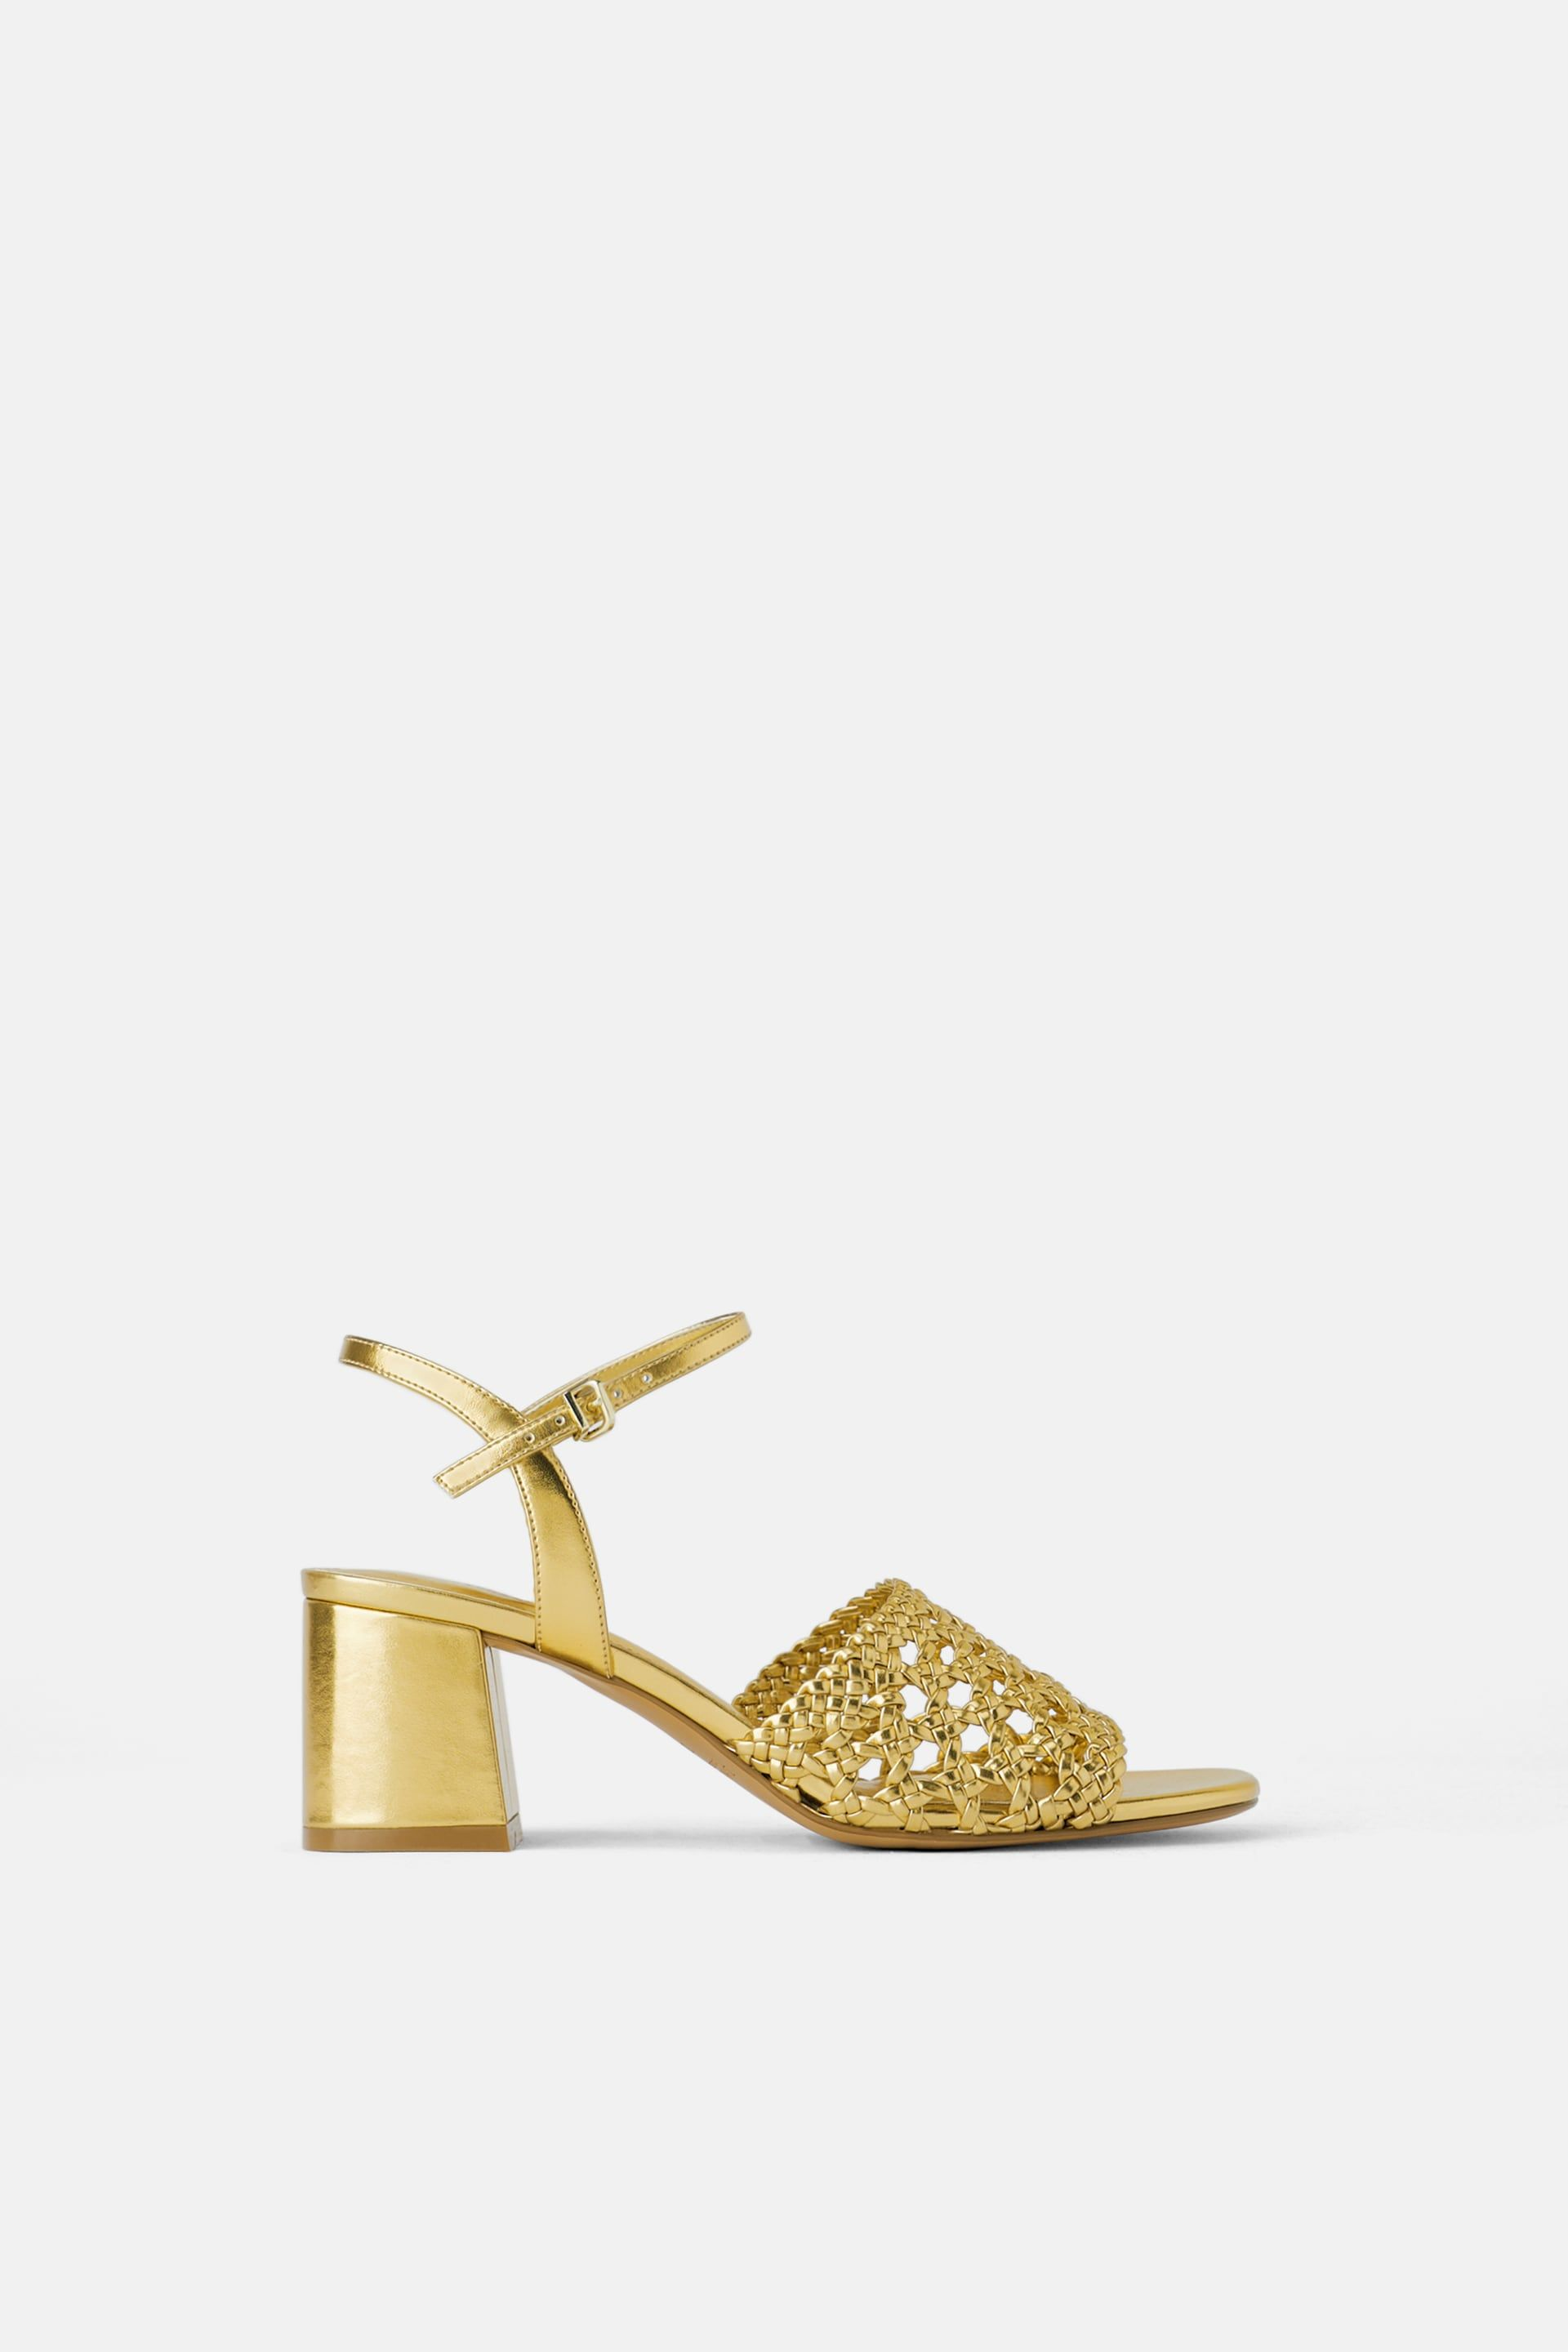 a8c9cada216 Wide heeled woven sandals in 2019 | Shoes, Por Favor | Sandals ...